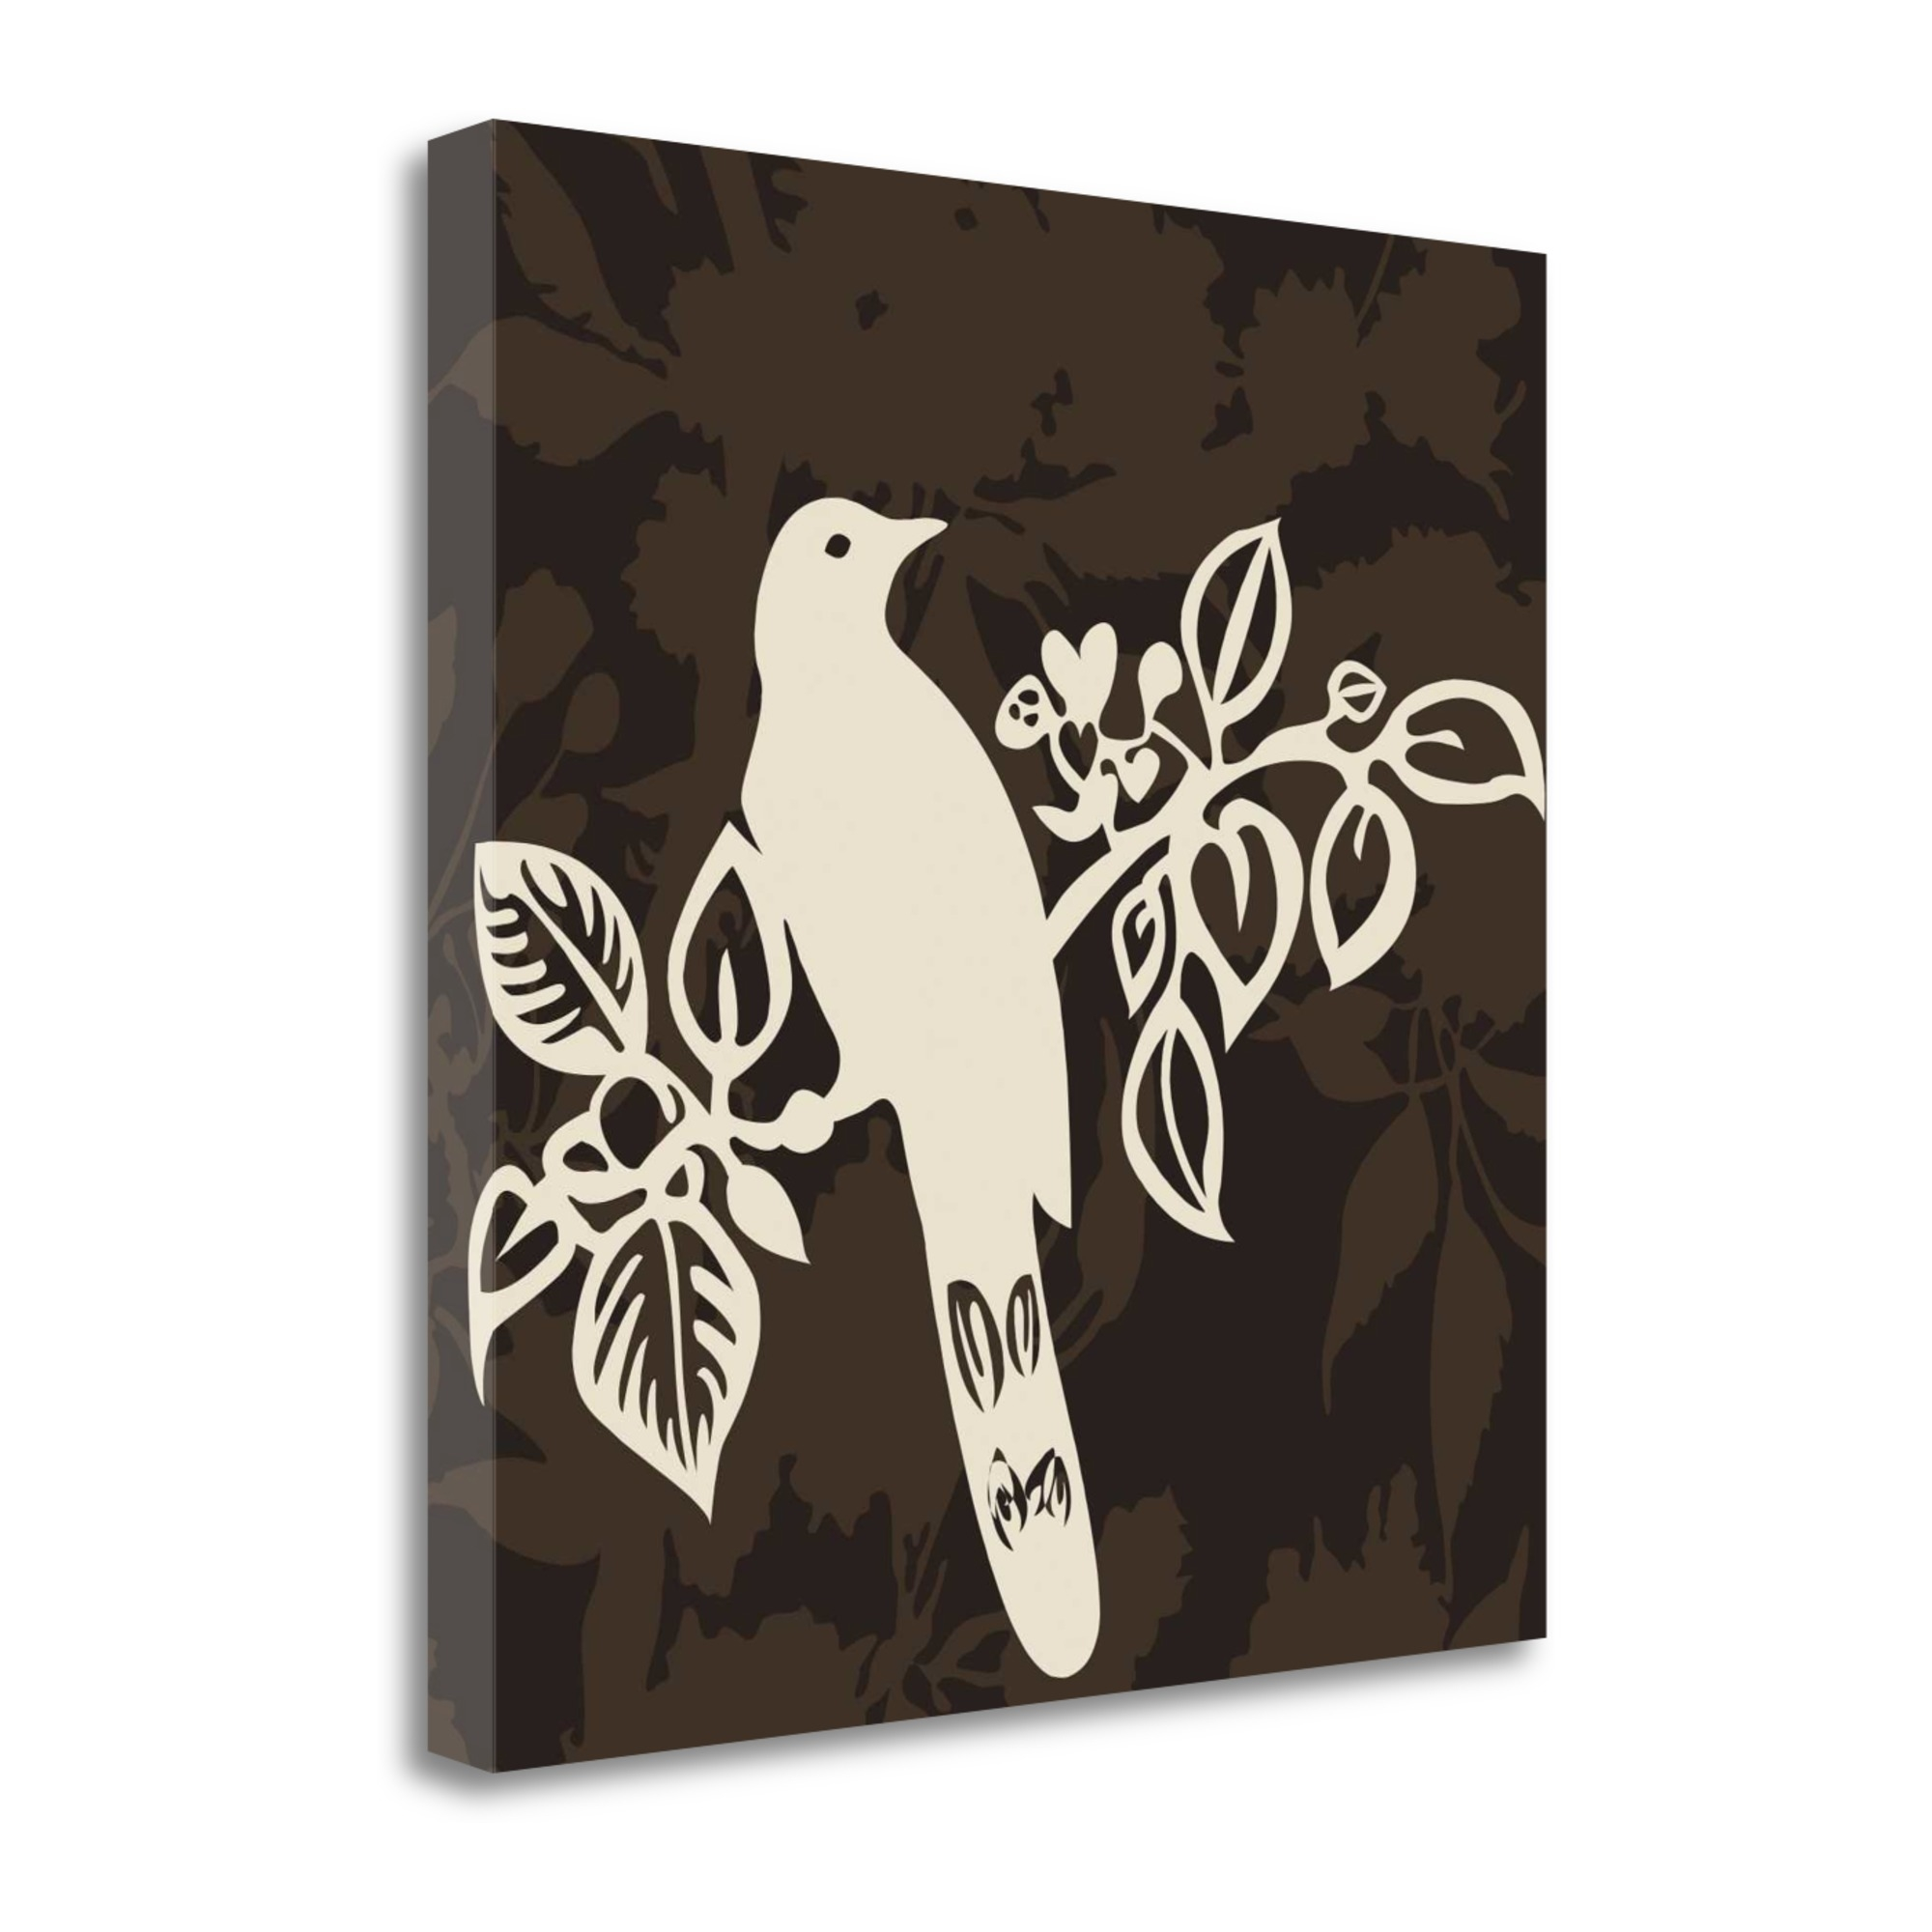 "Song Bird 2 By Jette Svane, 29"" x 29\"" Fine Art Giclee Print on Gallery Wrap Canvas, Ready to Hang"